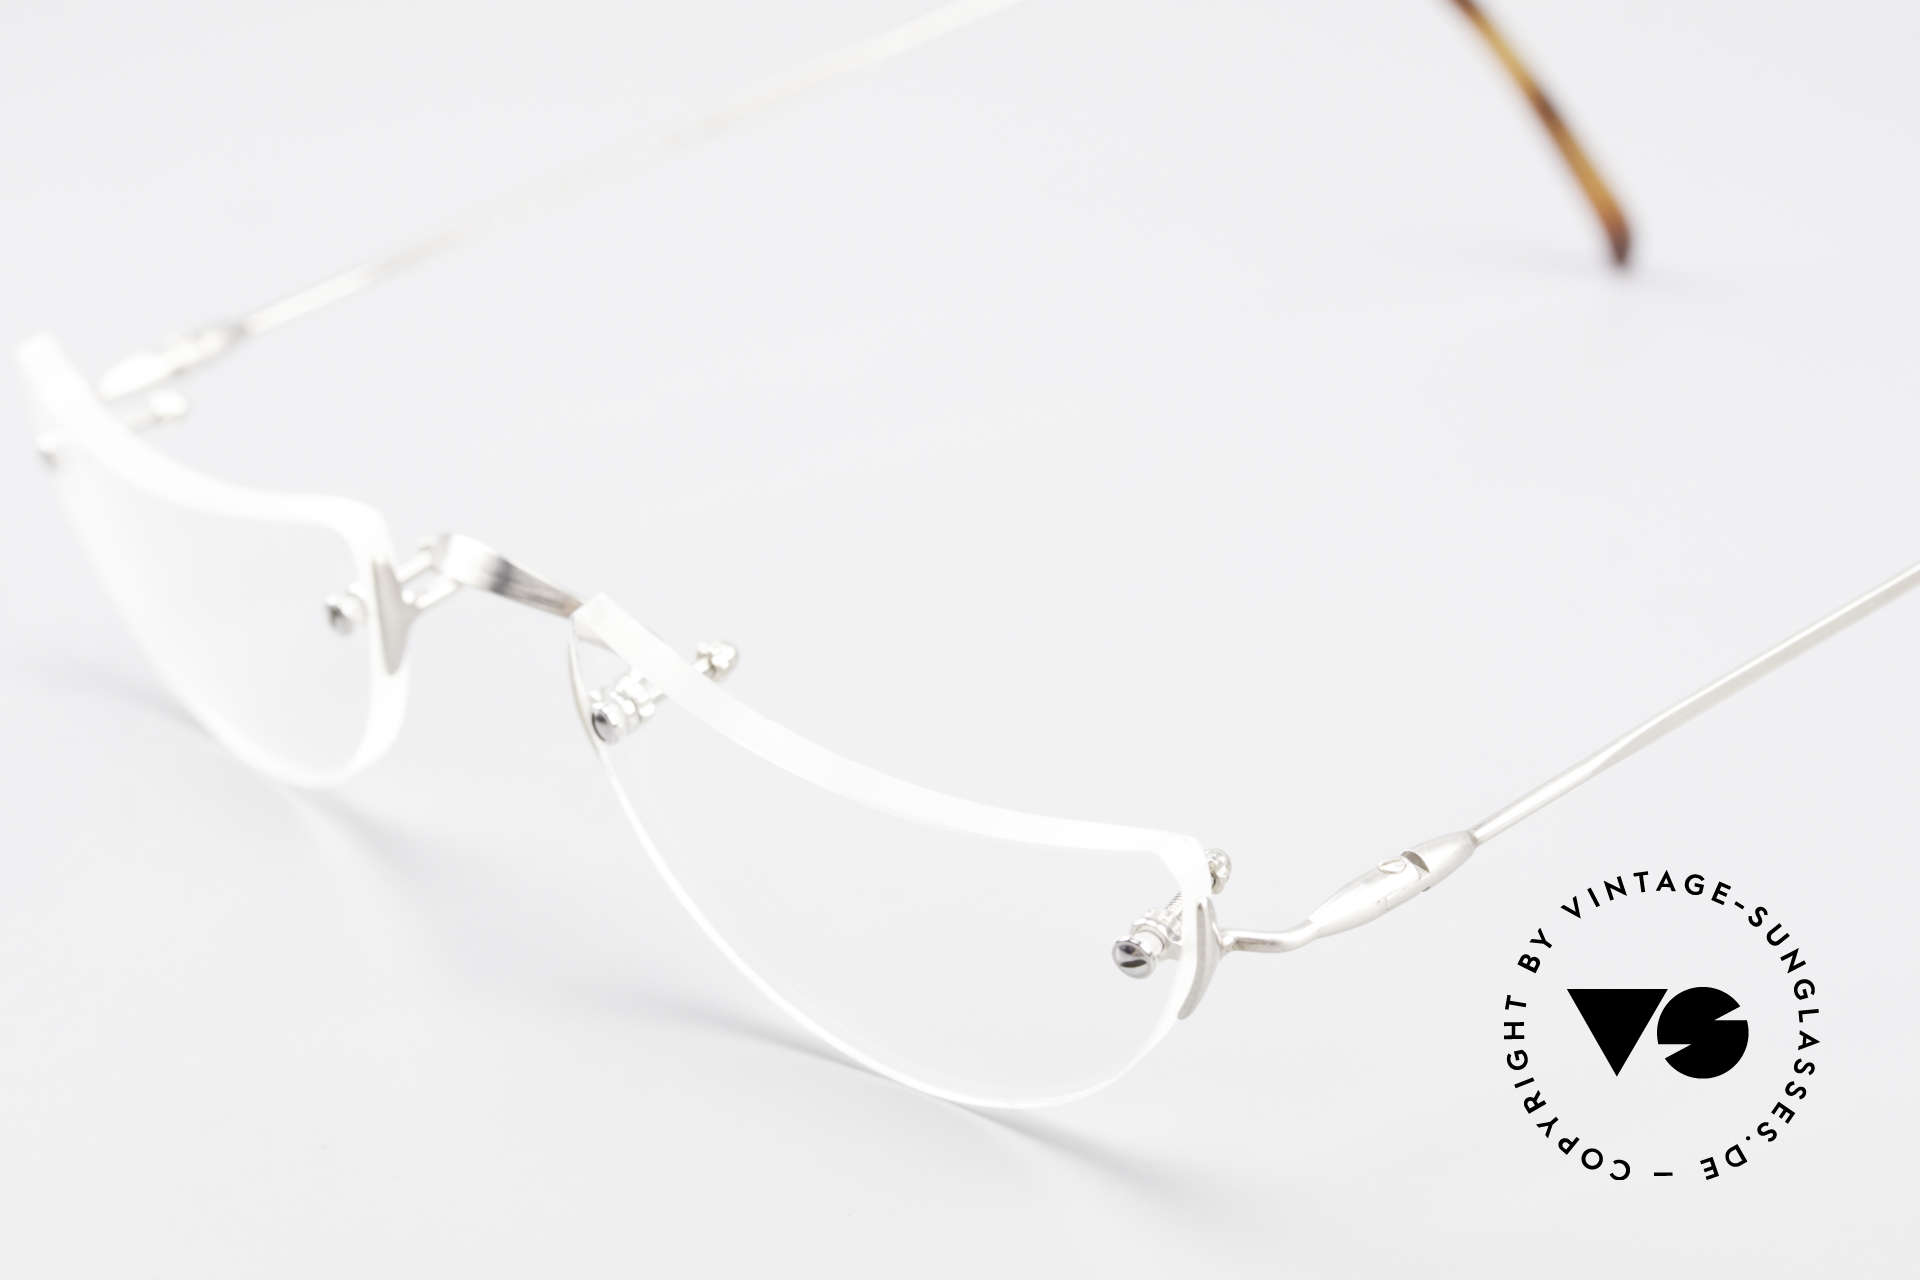 Lunor Classic Reading Rimless Reading Eyeglasses, NO RETRO EYEGLASSES; but a luxury vintage ORIGINAL, Made for Men and Women